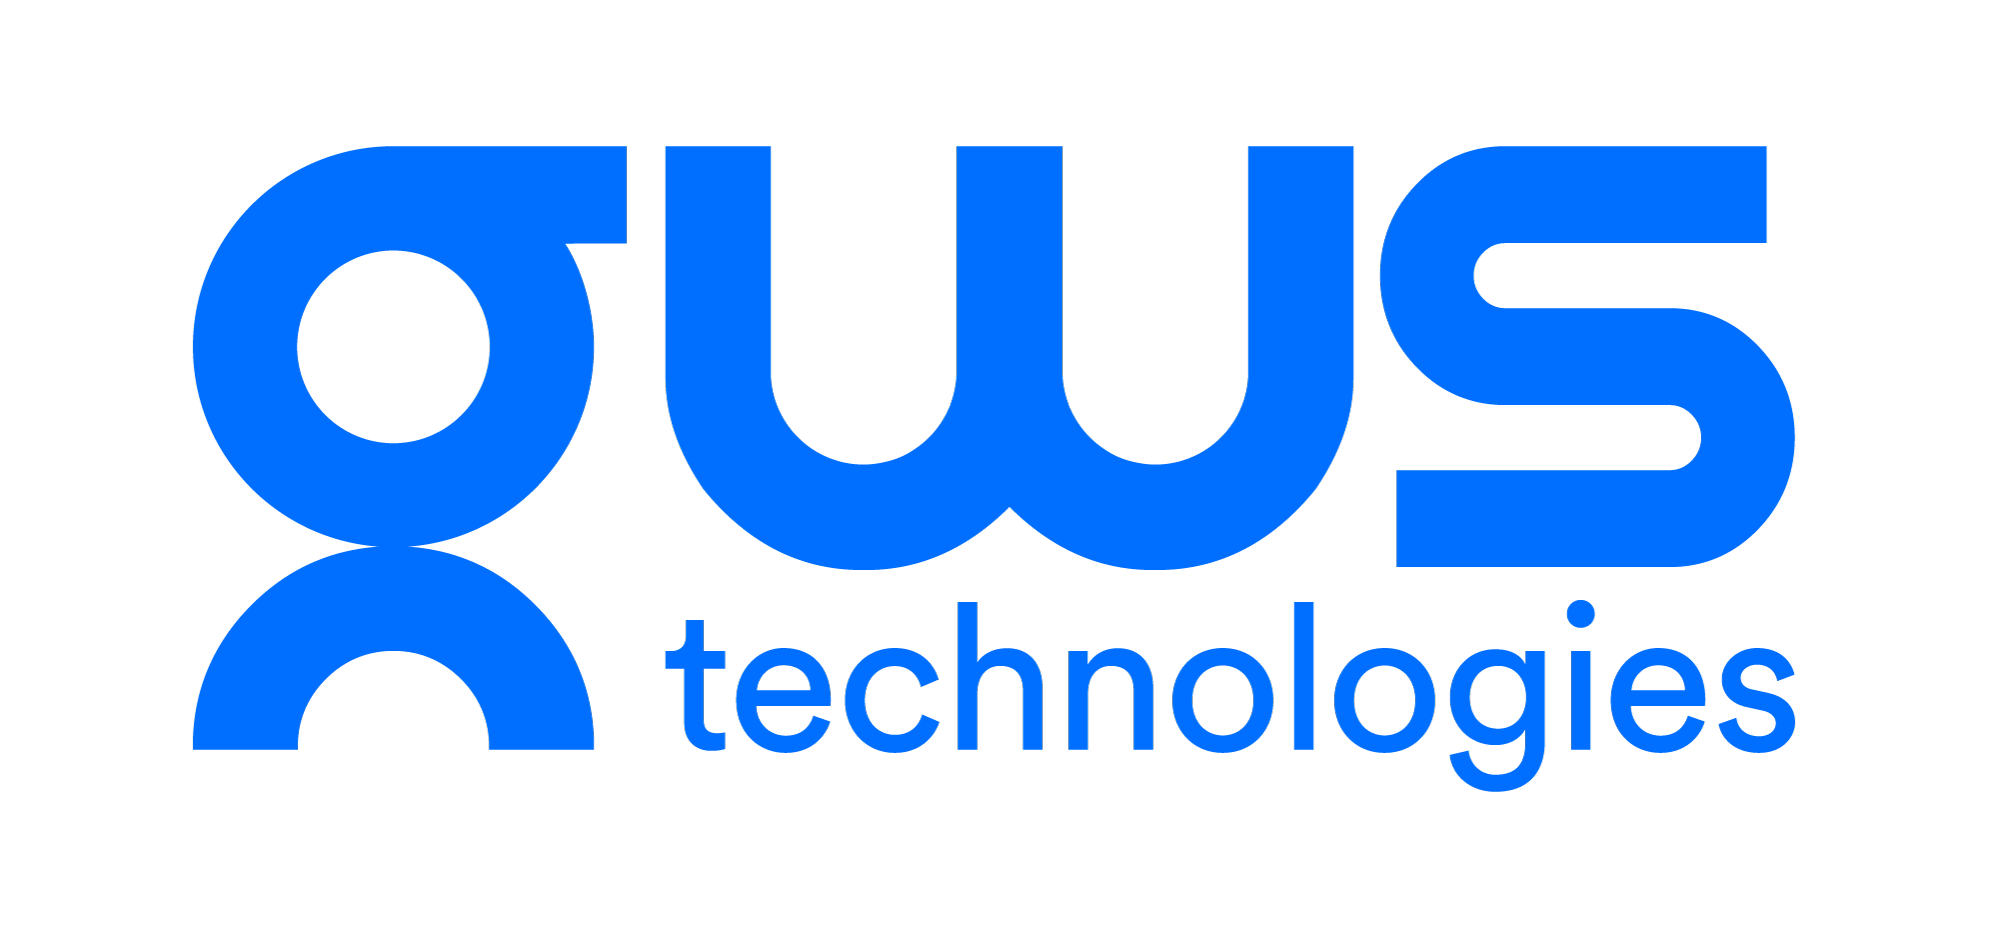 GWS Technologies, WordPress Websites in Mauritius, Hosting, Domain Names, Online Marketing